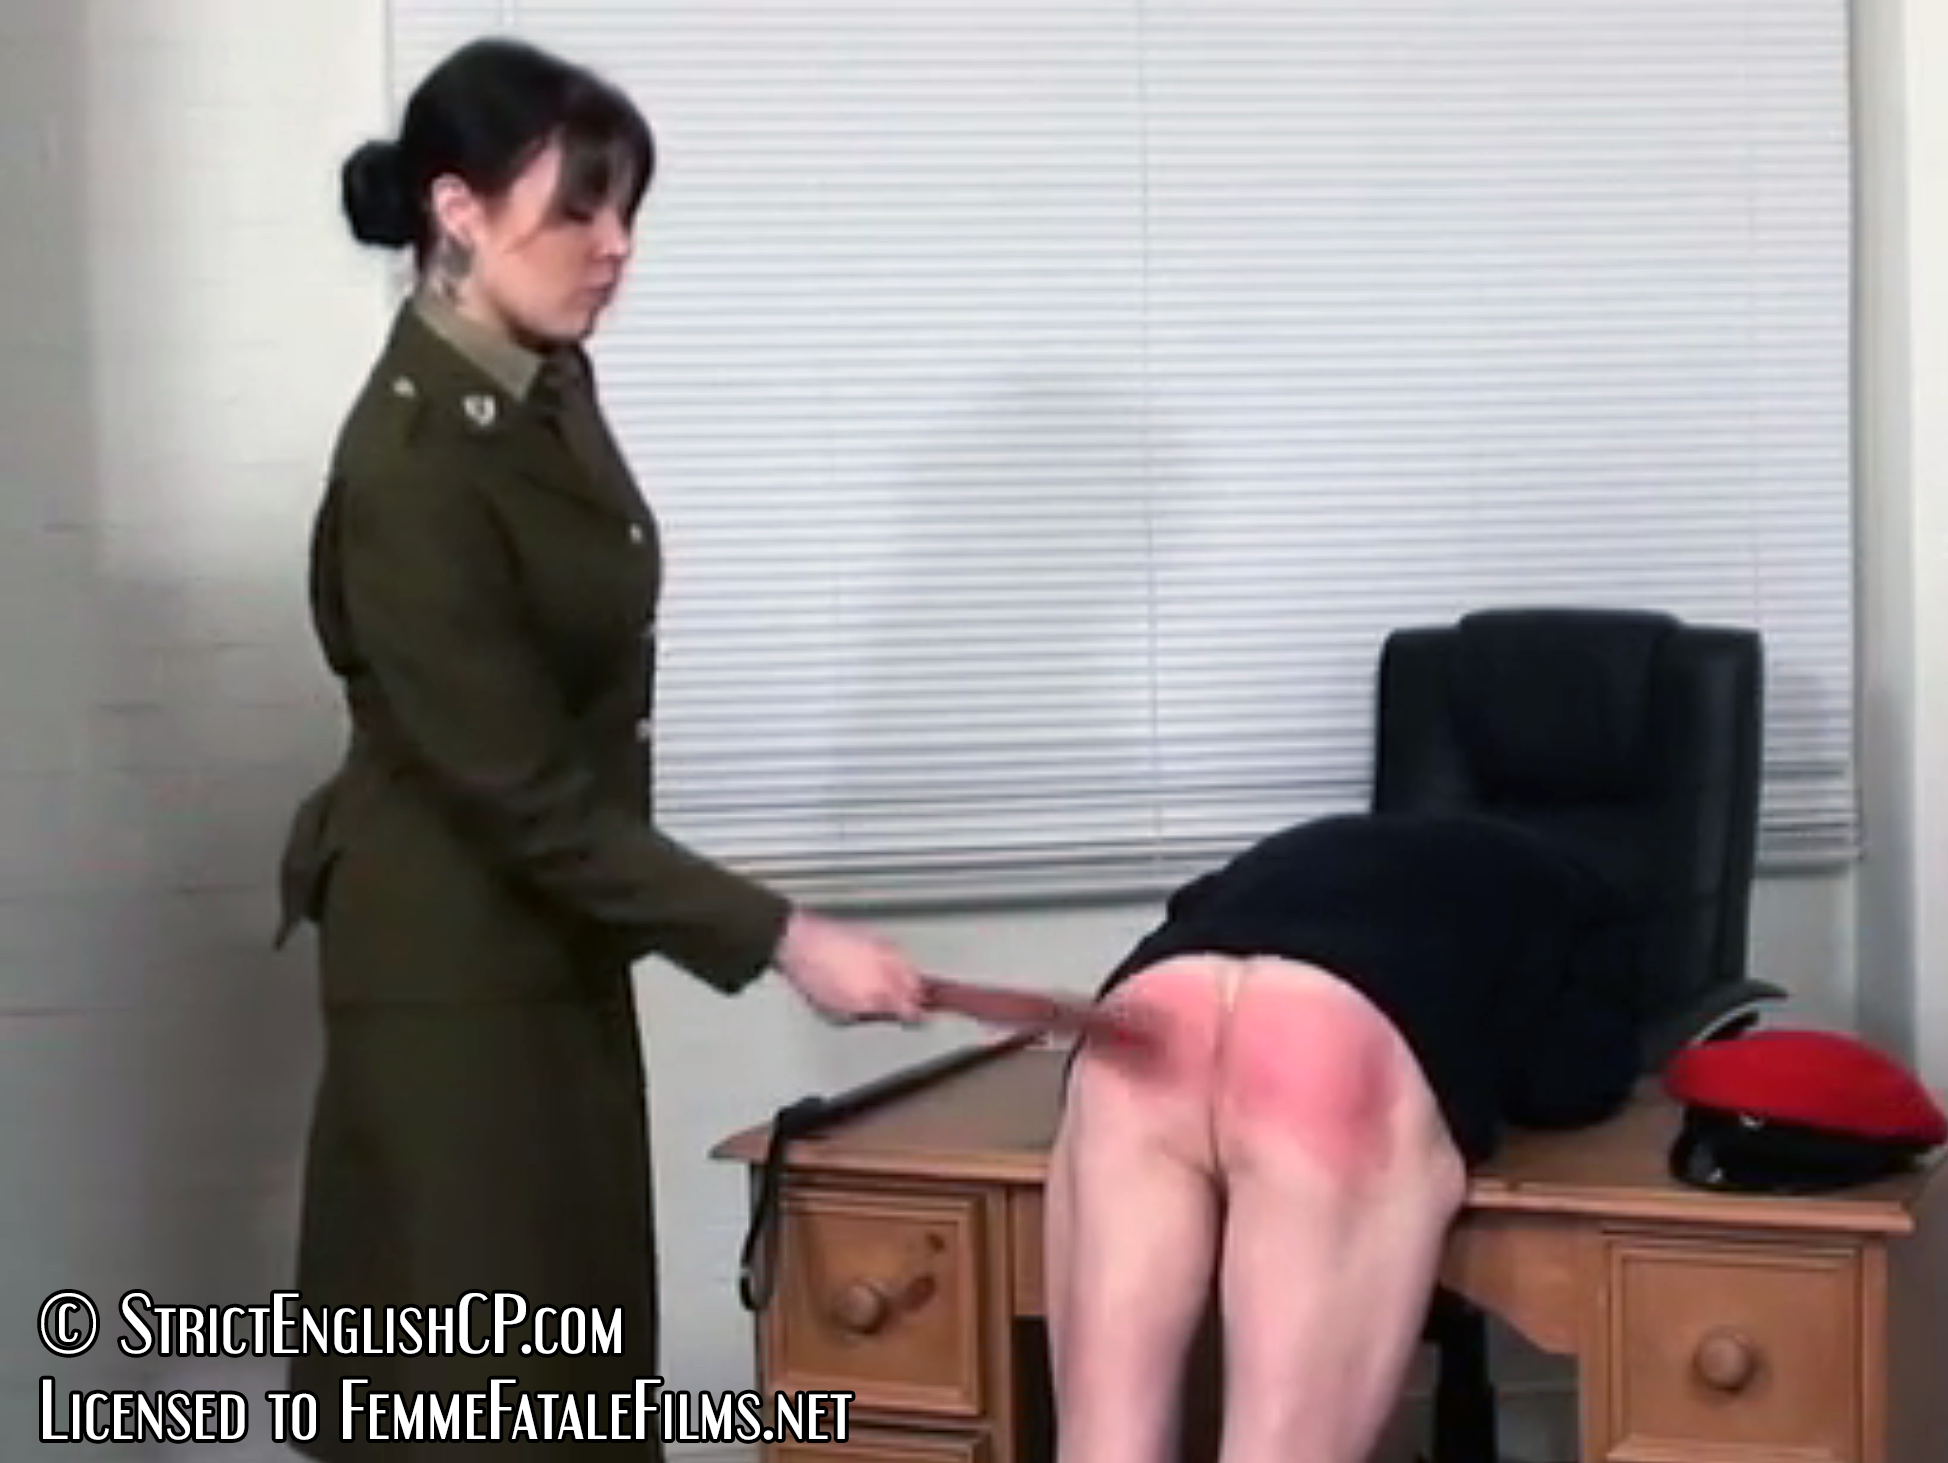 Private punishment on the bare bottom